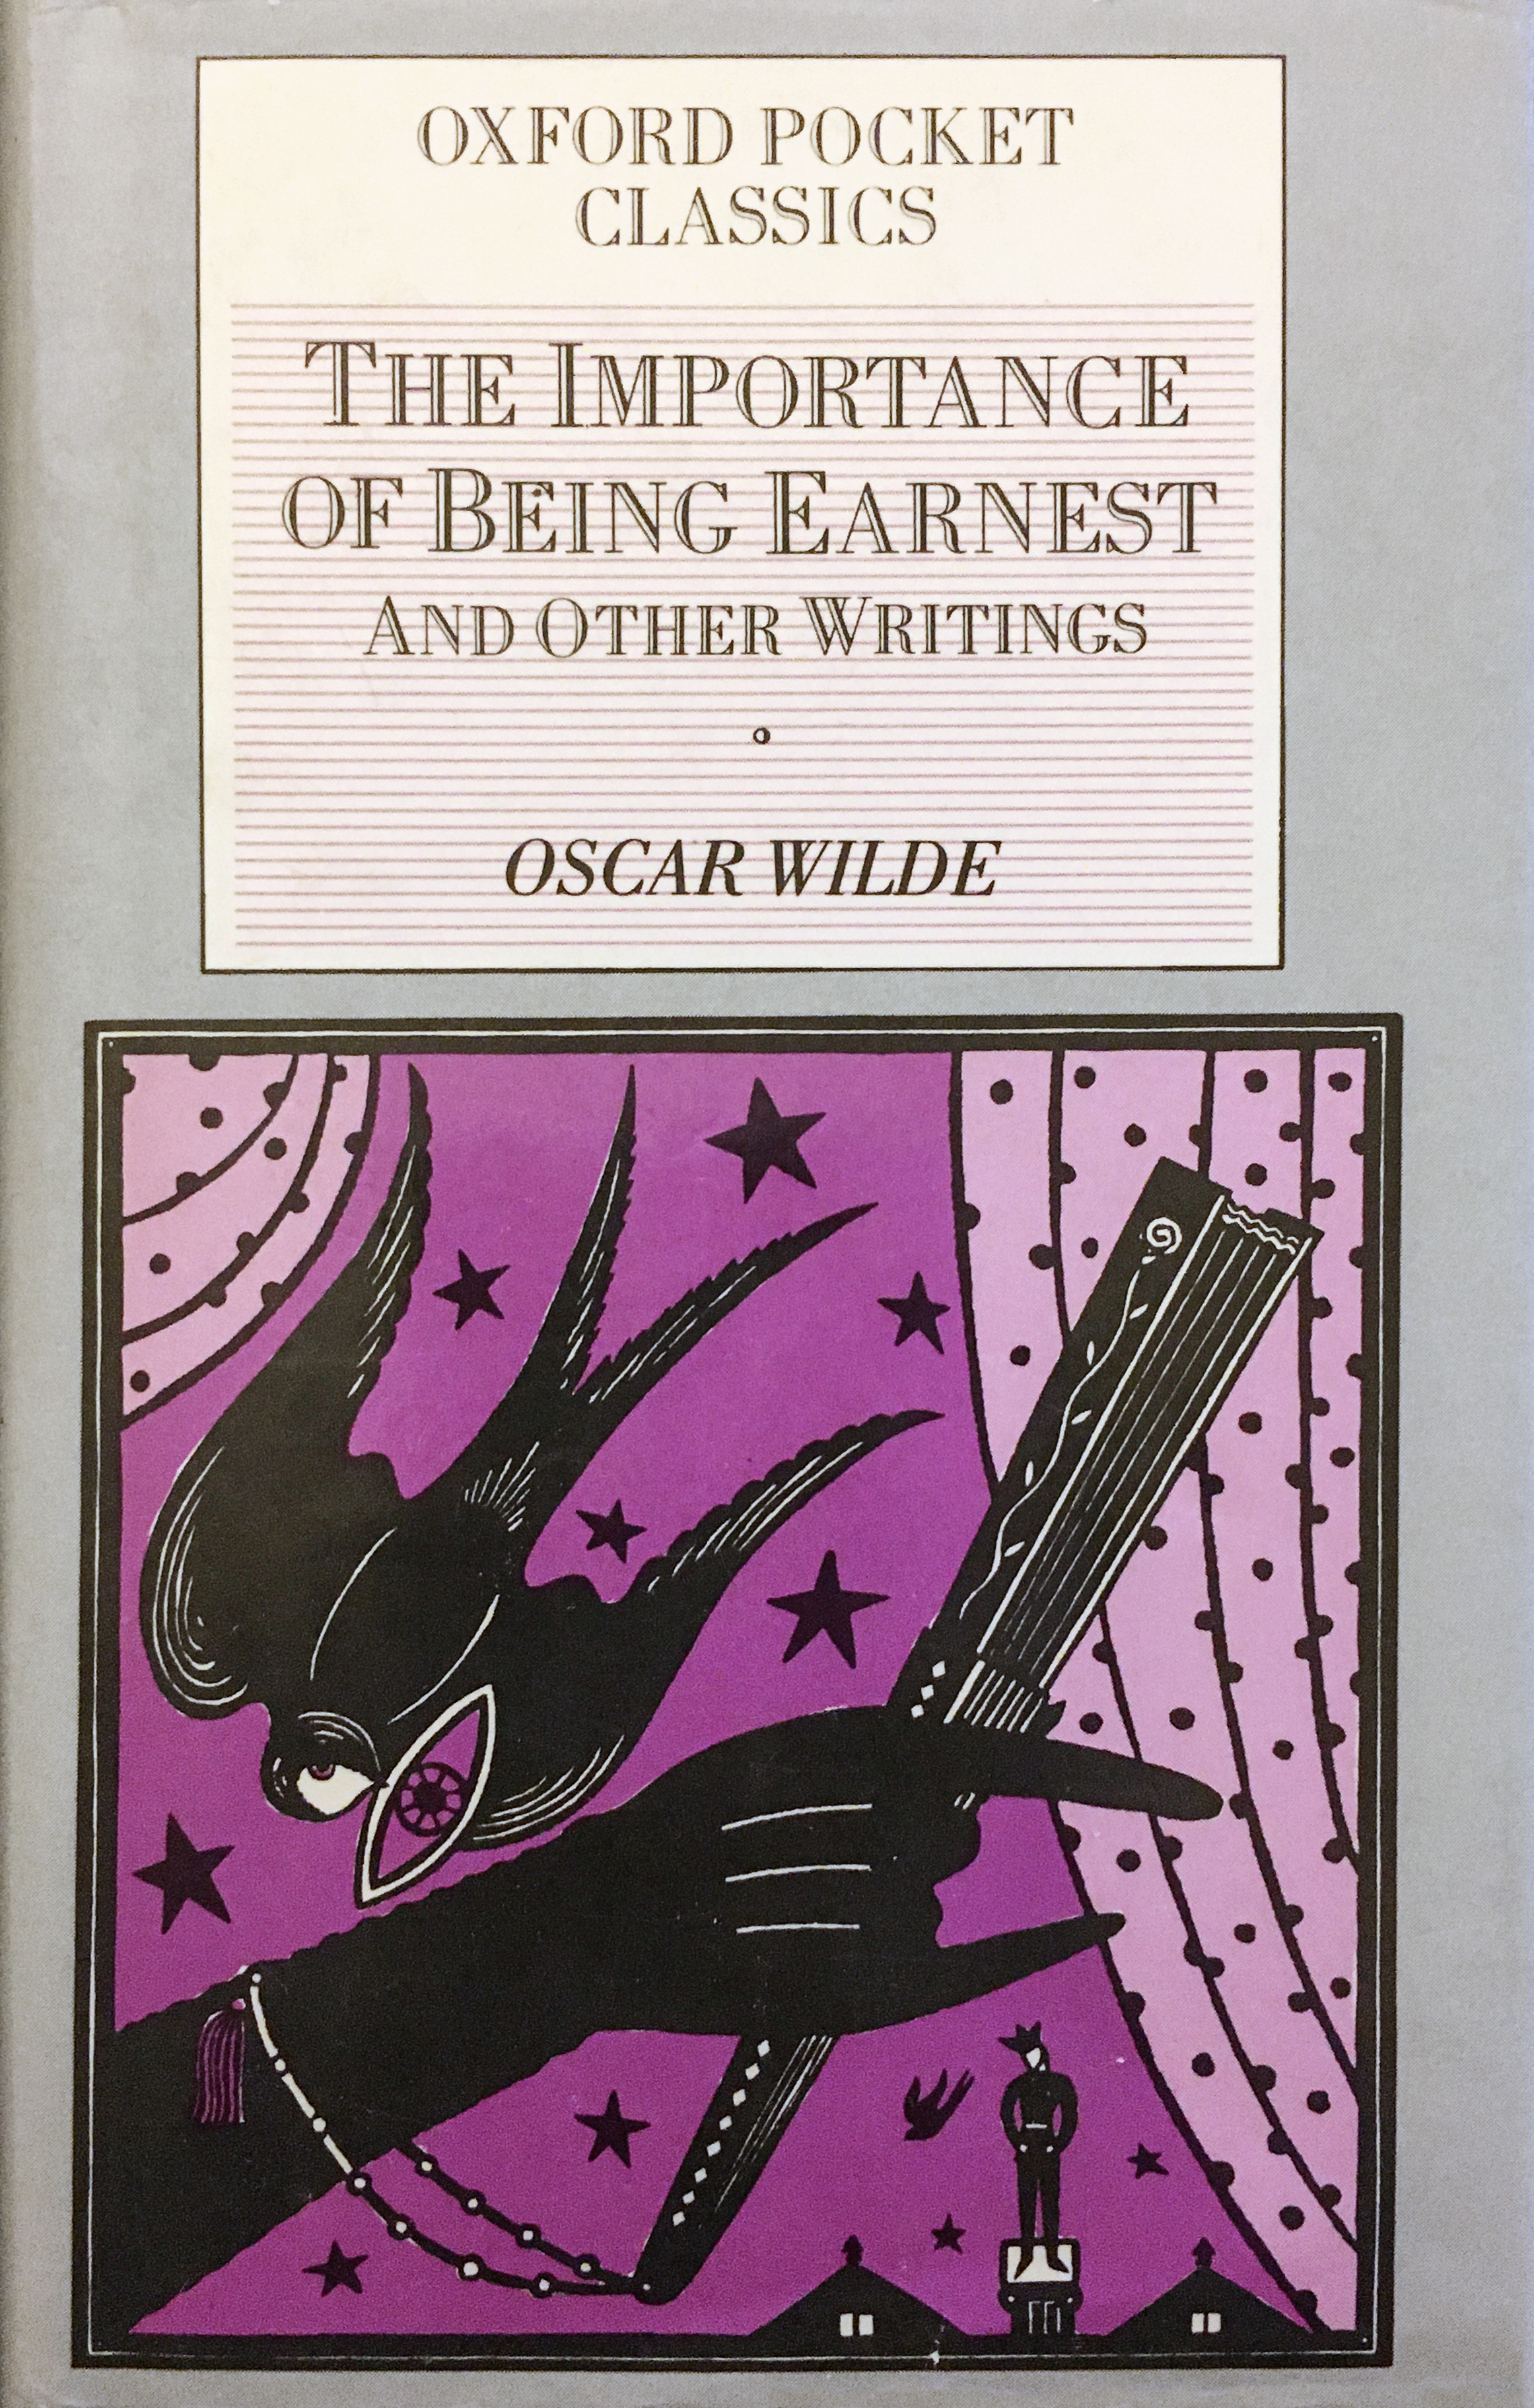 The Importance of Being Earnest and Other Writings